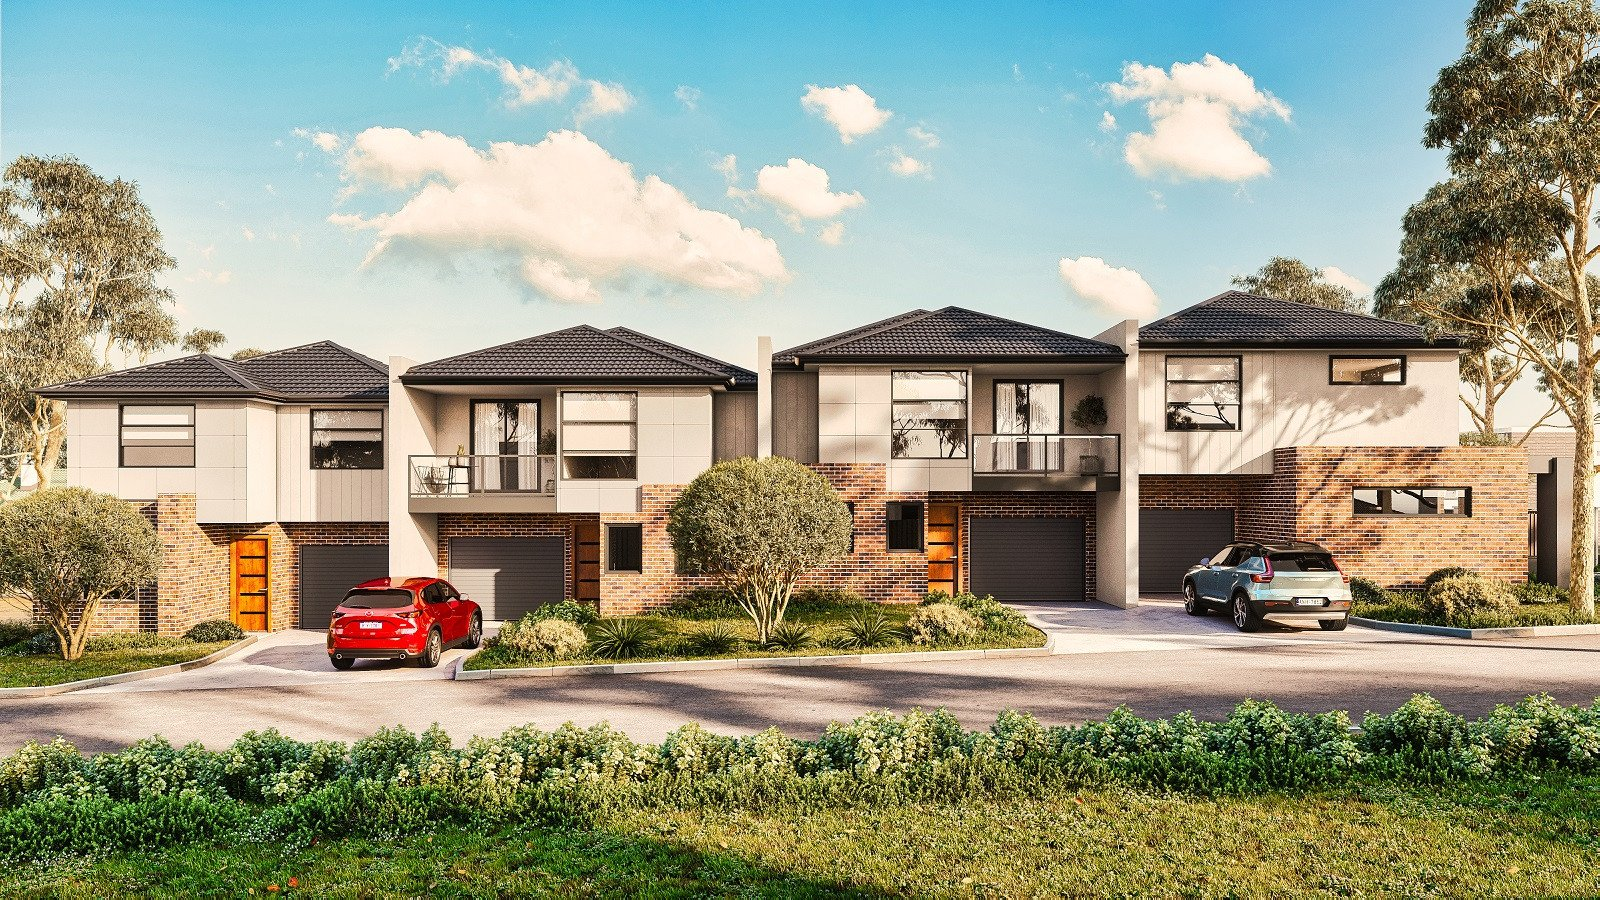 Stud Road Townhomes-image-2